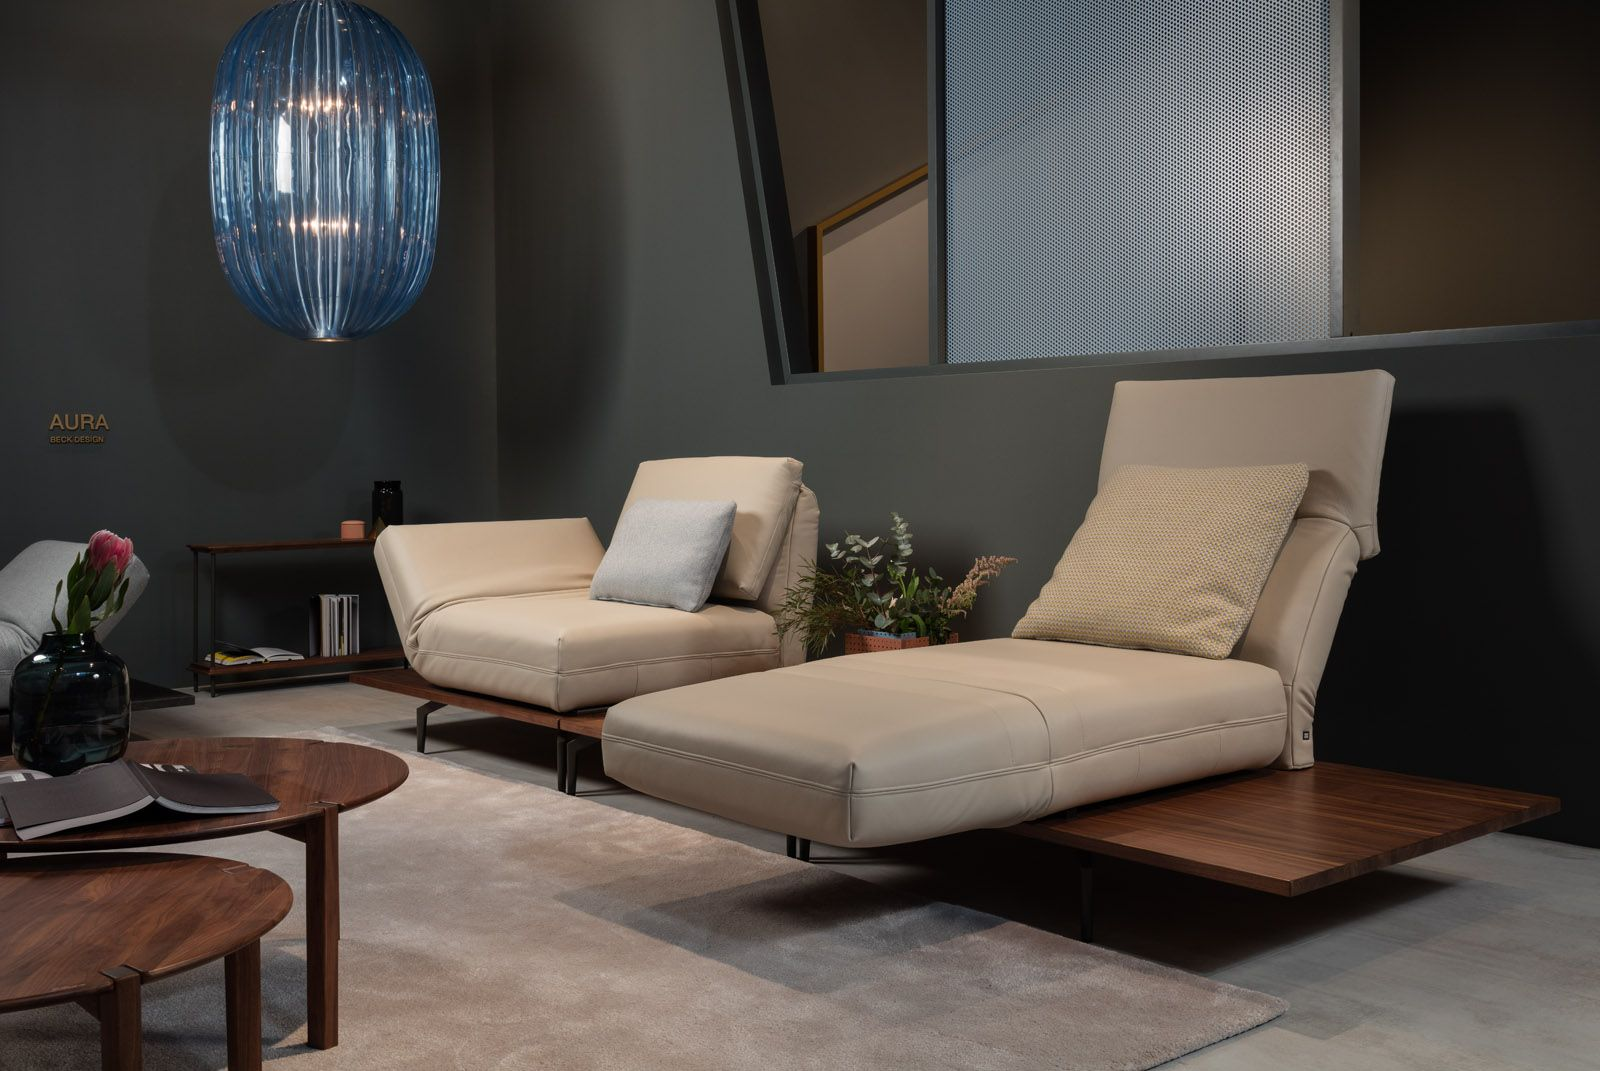 Rolf Benz Aura Authentic Elegance For The Living Room Rolfbenz